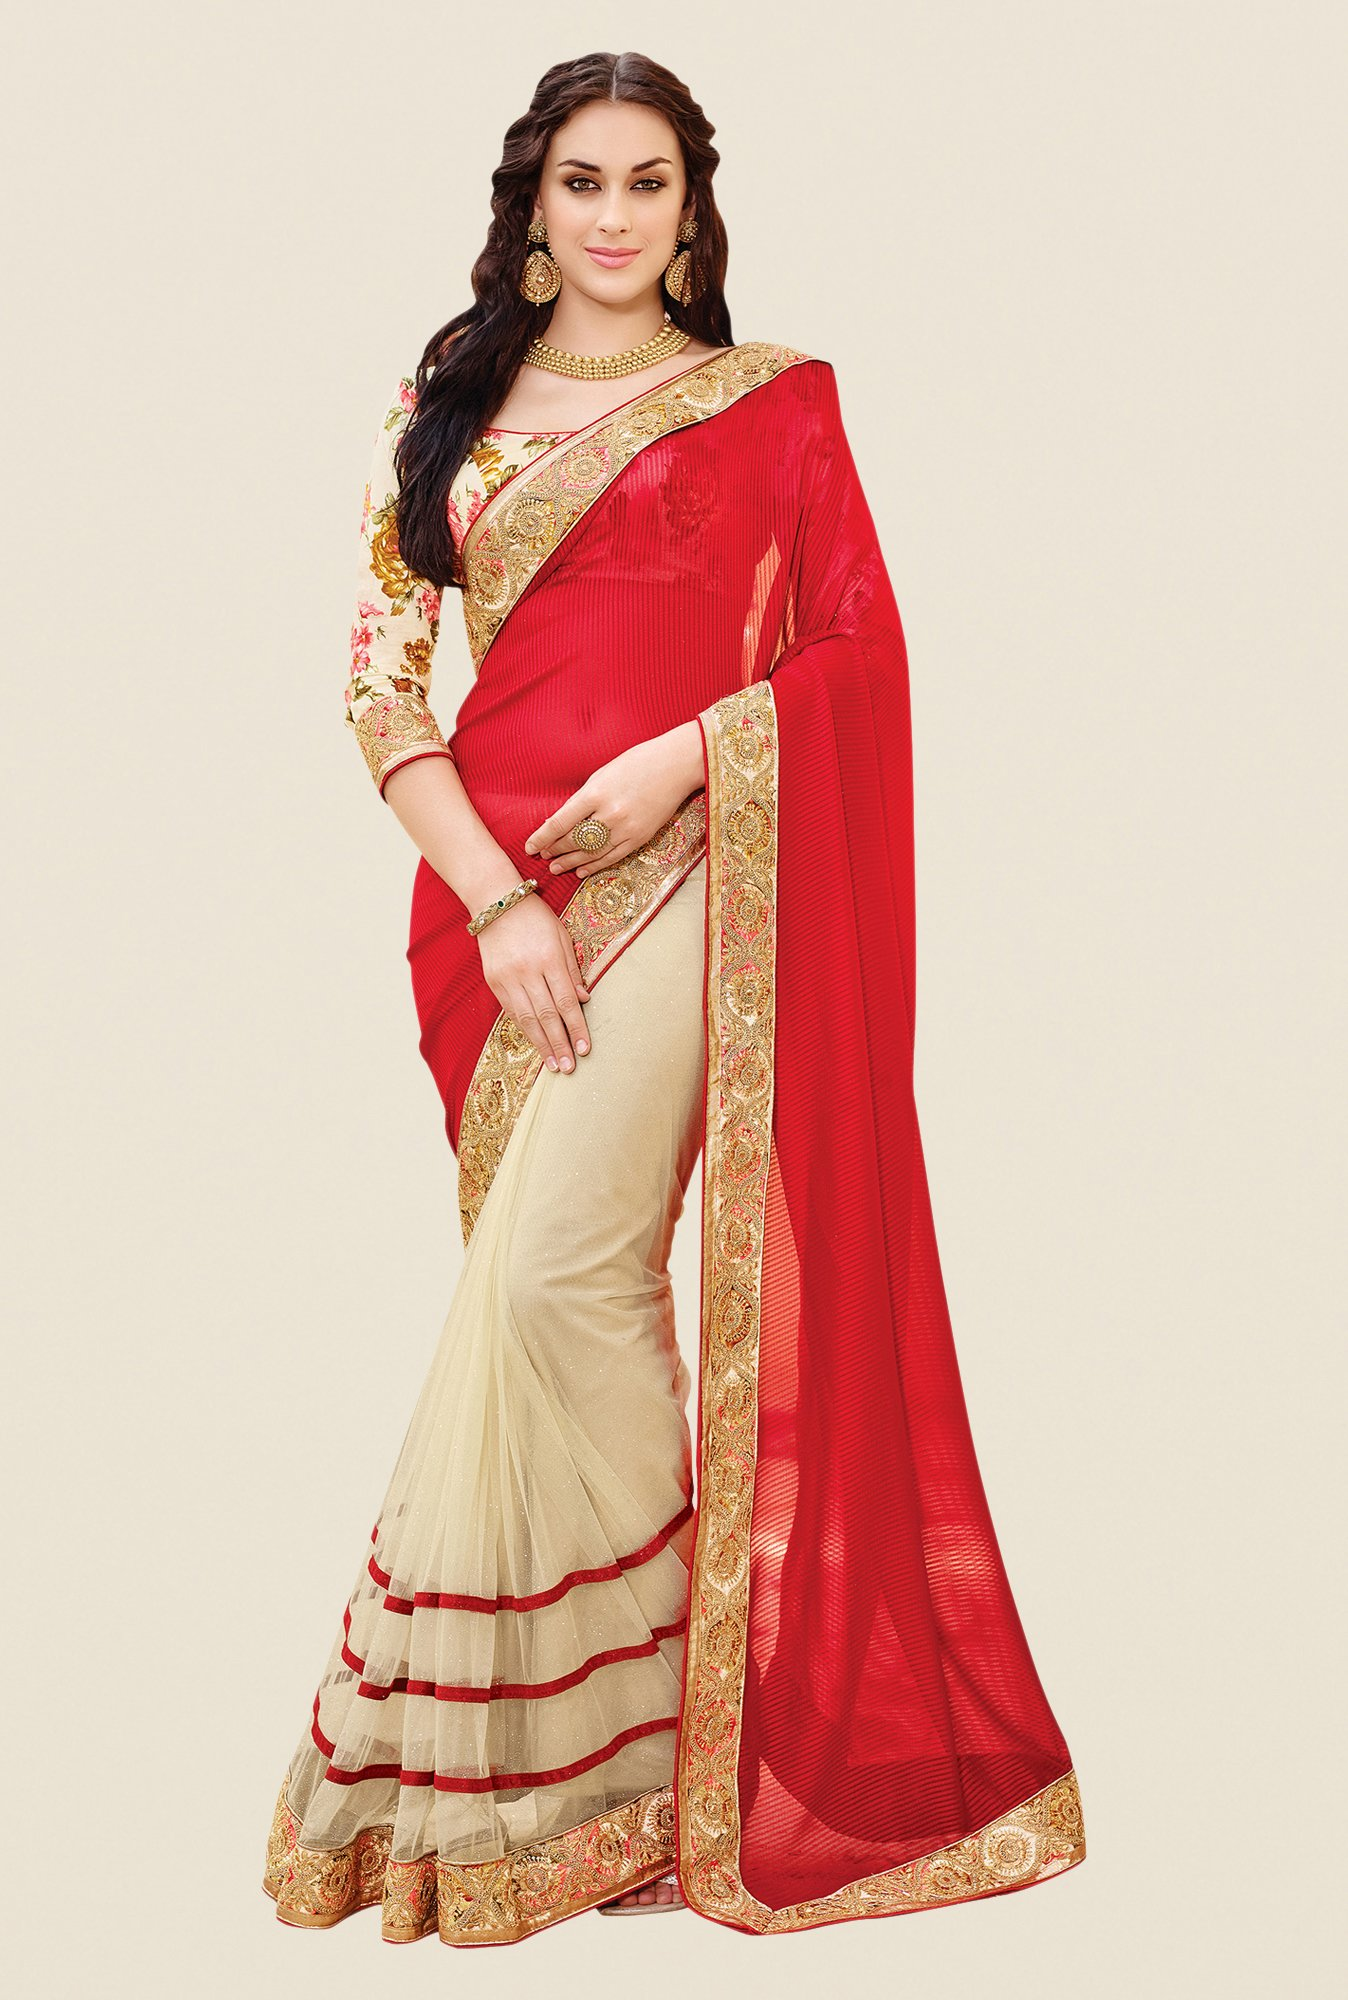 Shonaya Beige & Red Net & Georgette Solid Saree